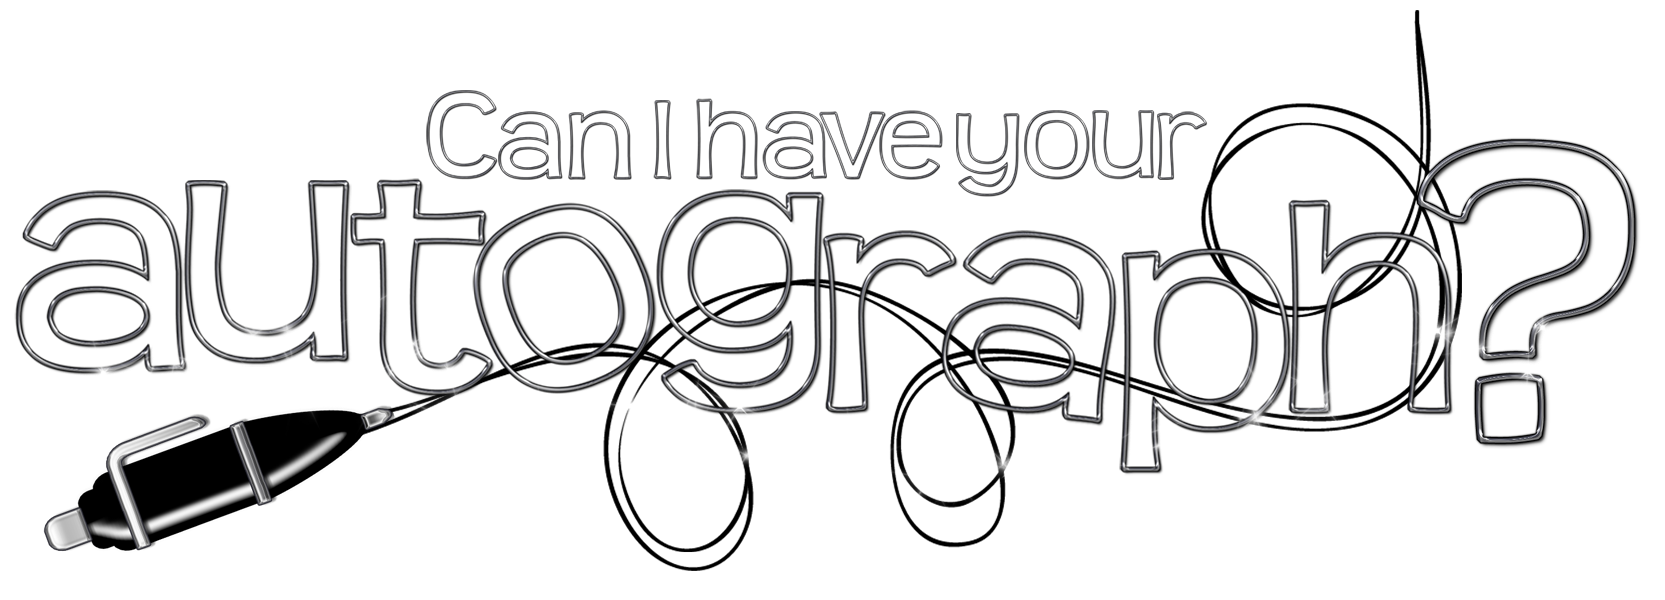 Free autograph cliparts download. Yearbook clipart clip art image stock